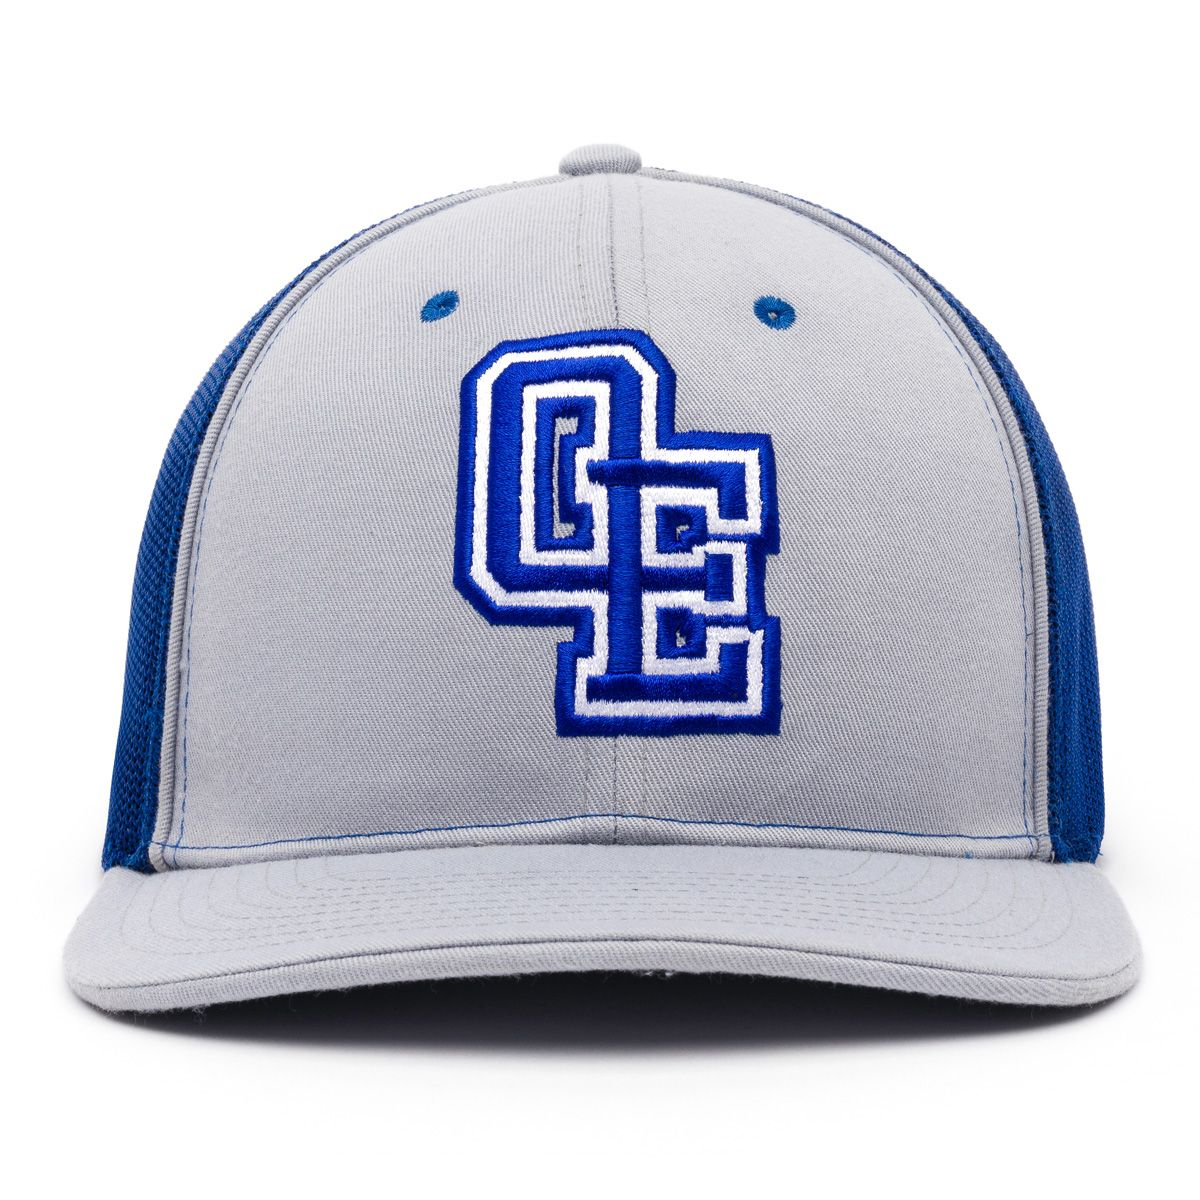 5f5943494be15 custom embroidered hat college design